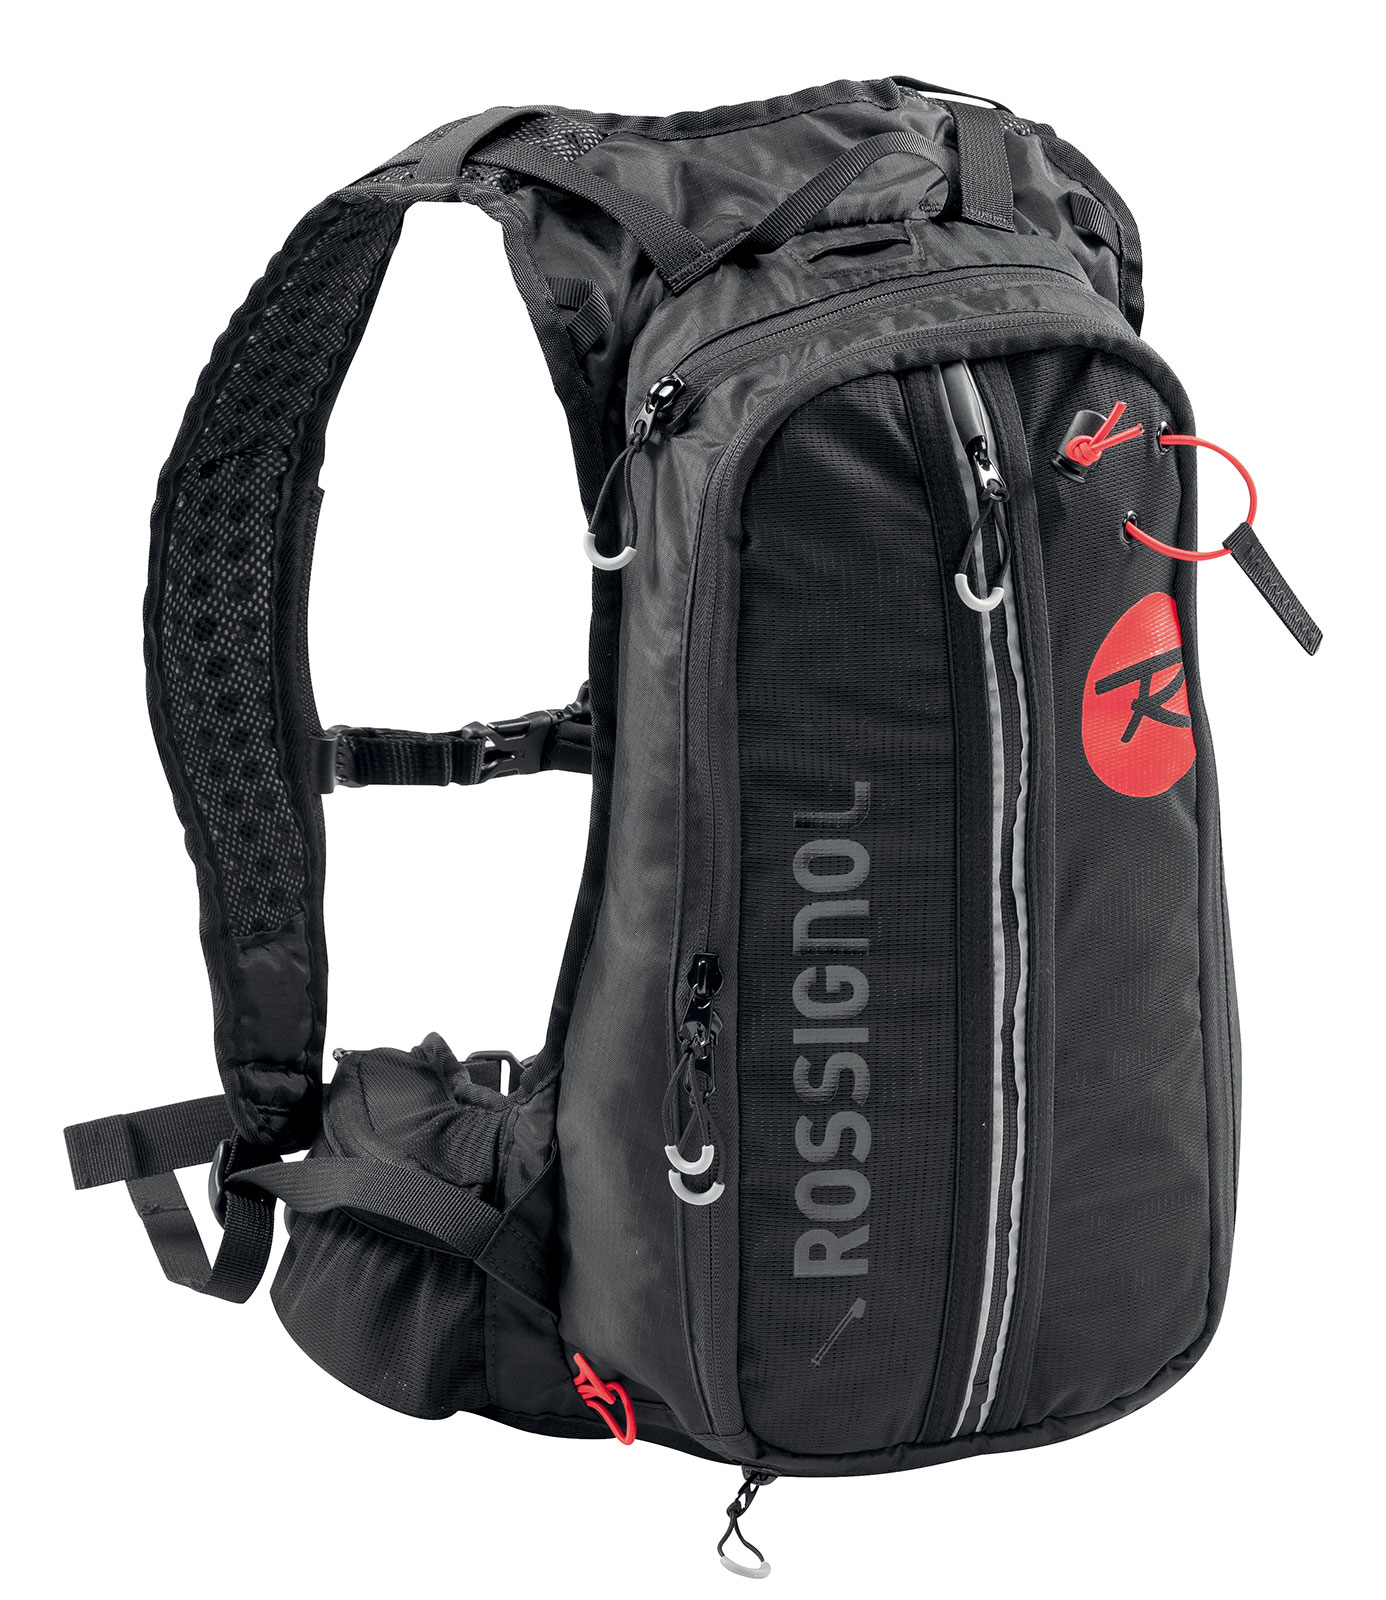 Rossignol Hydro Pack 15L Hydration Backpack Skiing Running Hiking Cycling by